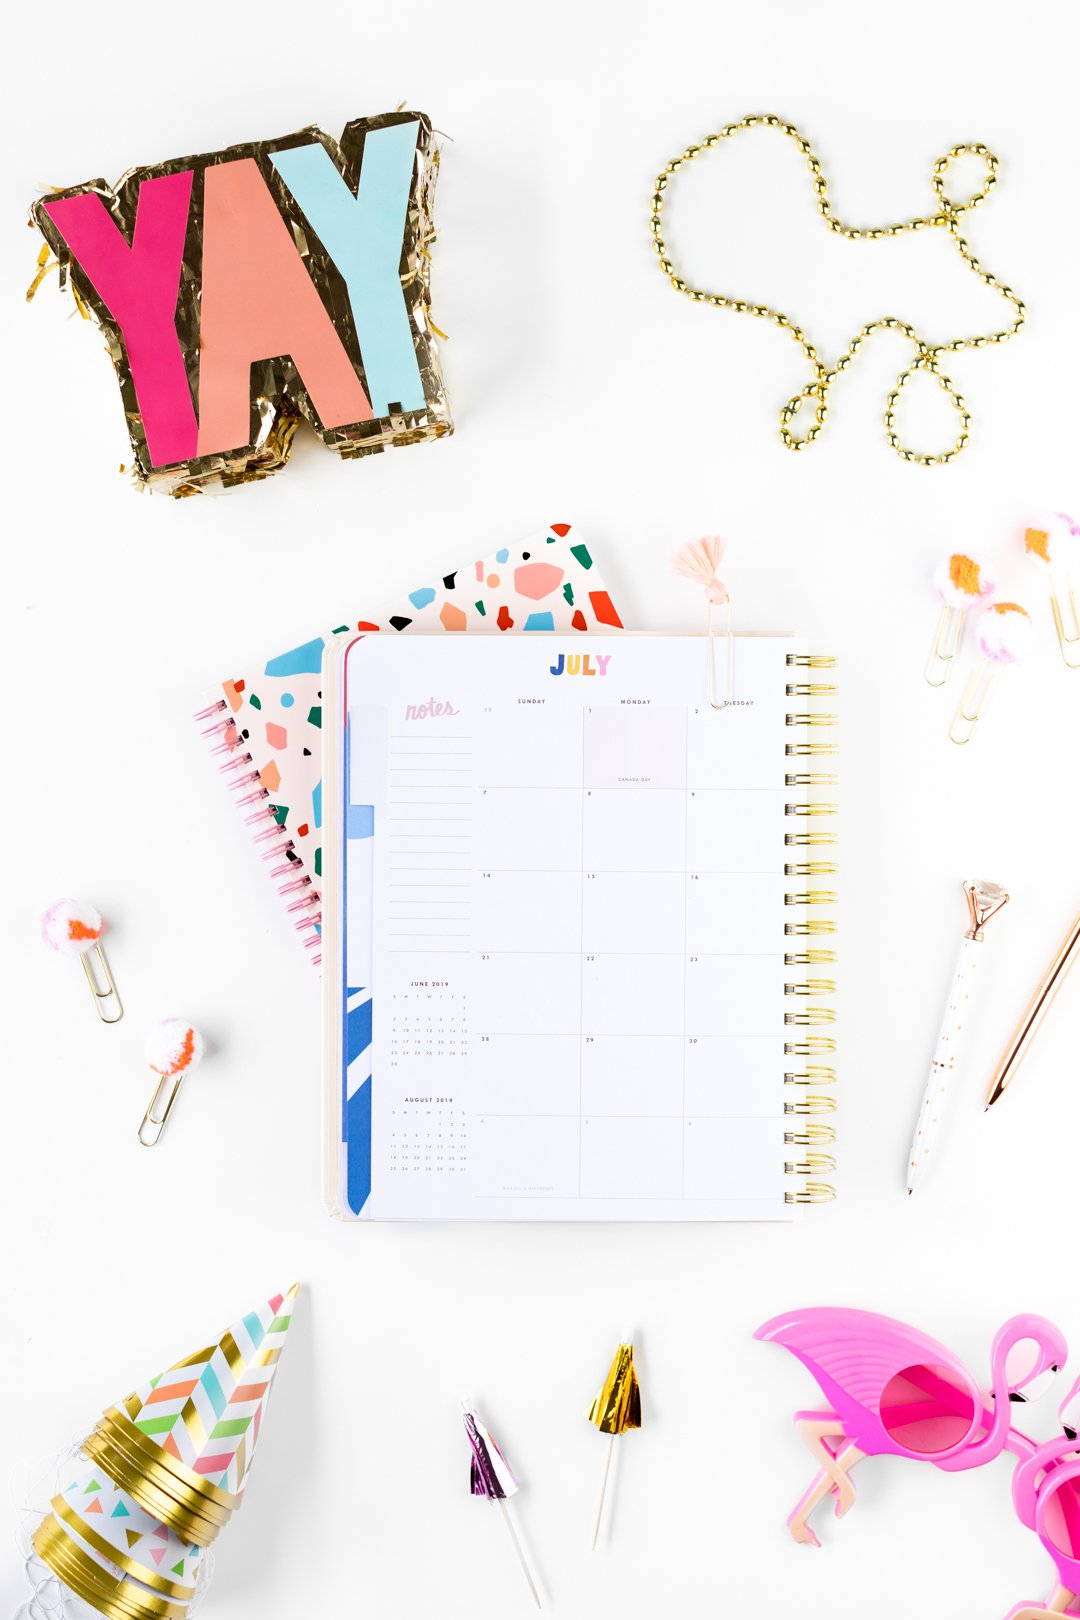 Party planning resources and cute office supplies